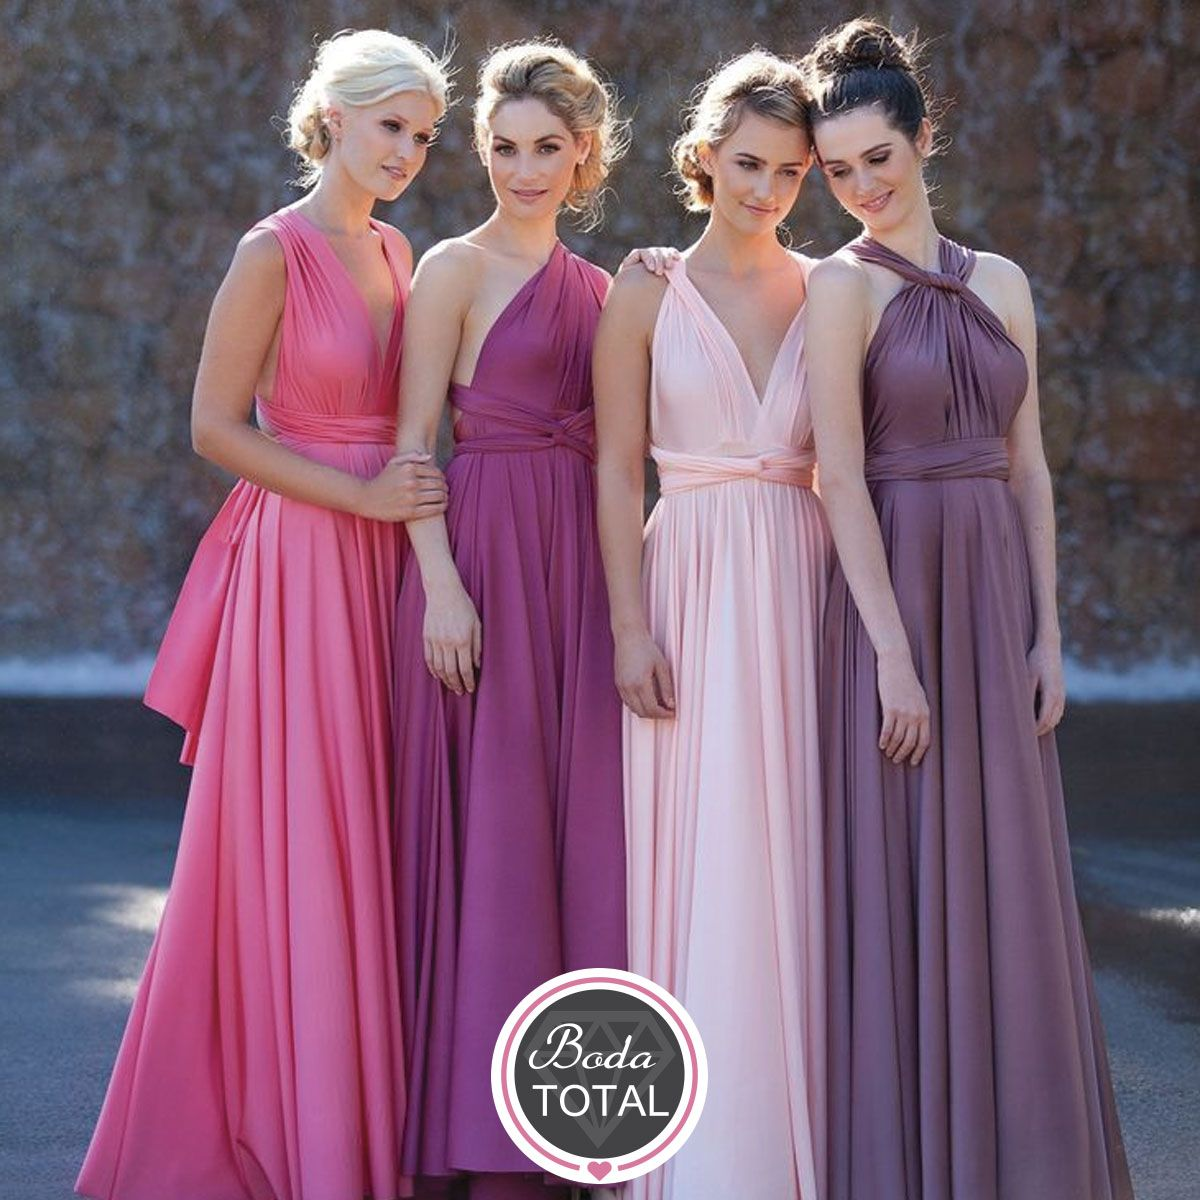 Goddess wrap dress - can be worn a number of ways | Bridesmaid ...